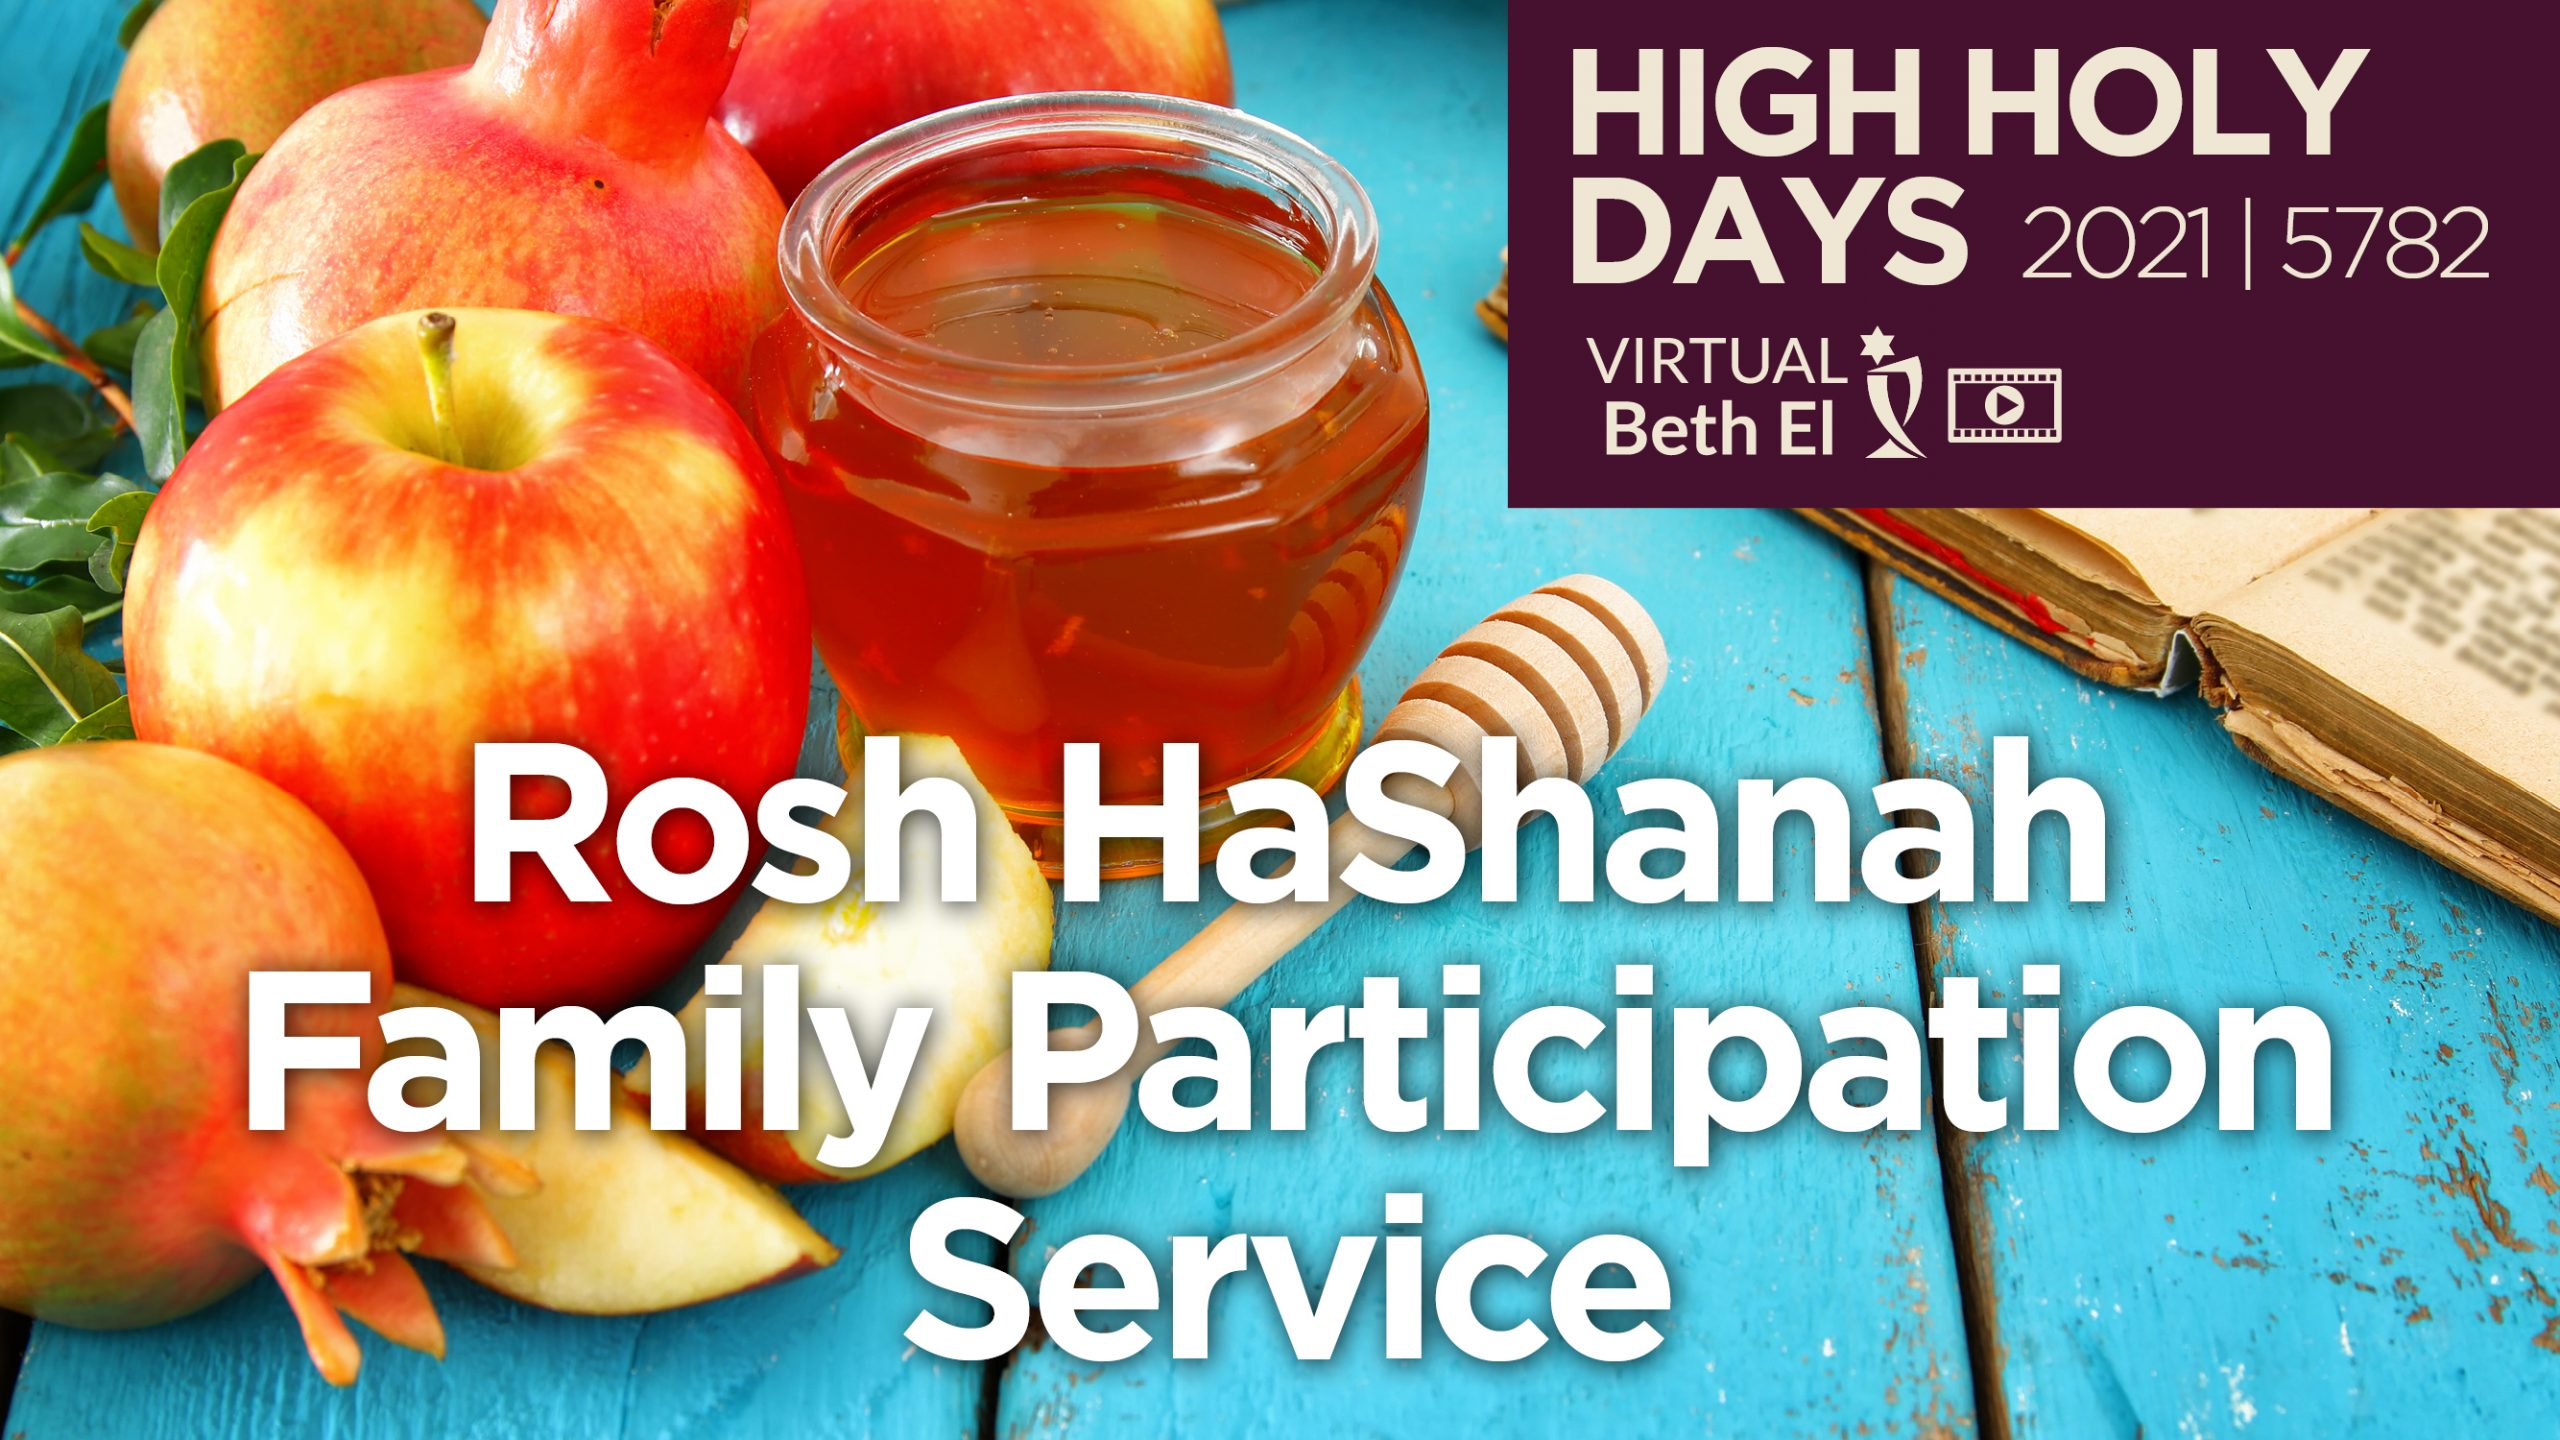 Rosh HaShanah Family Participation Services Announcement Graphic for 2021 5782